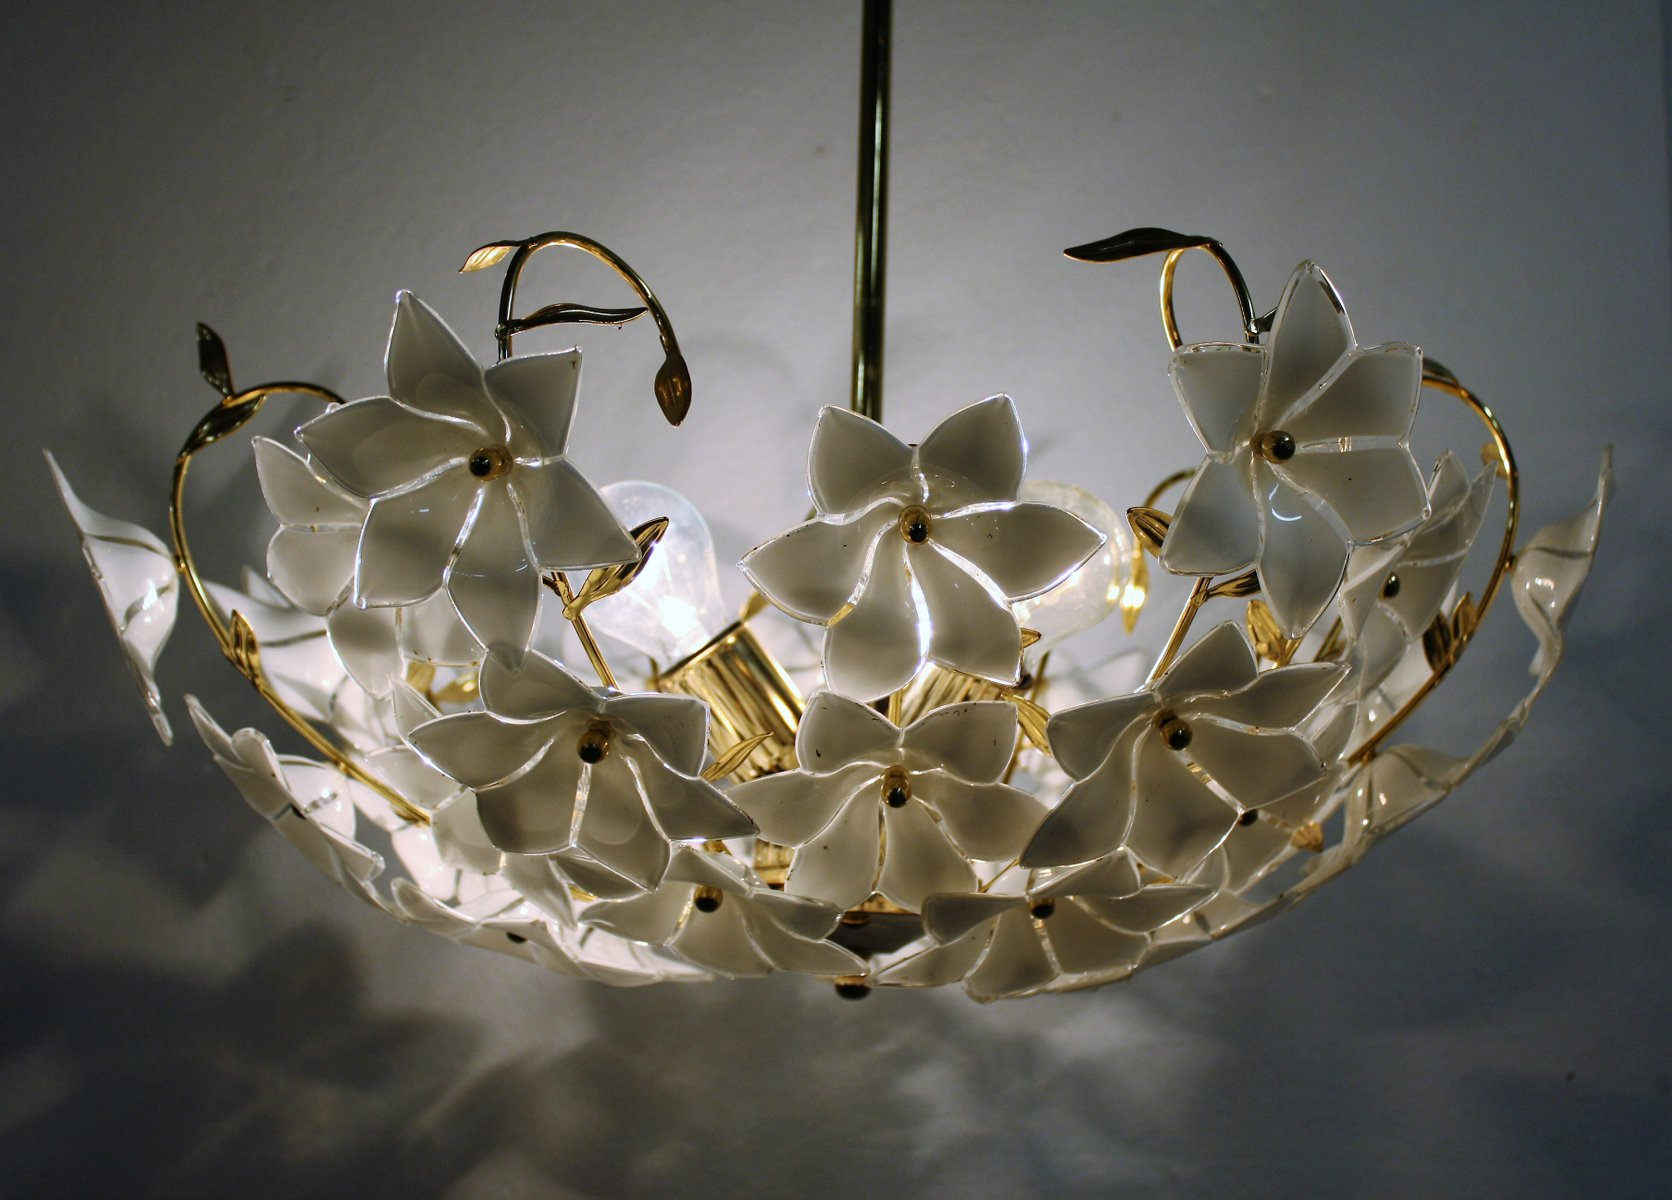 Brass murano glass flower chandelier 1970s for sale at pamono arubaitofo Image collections